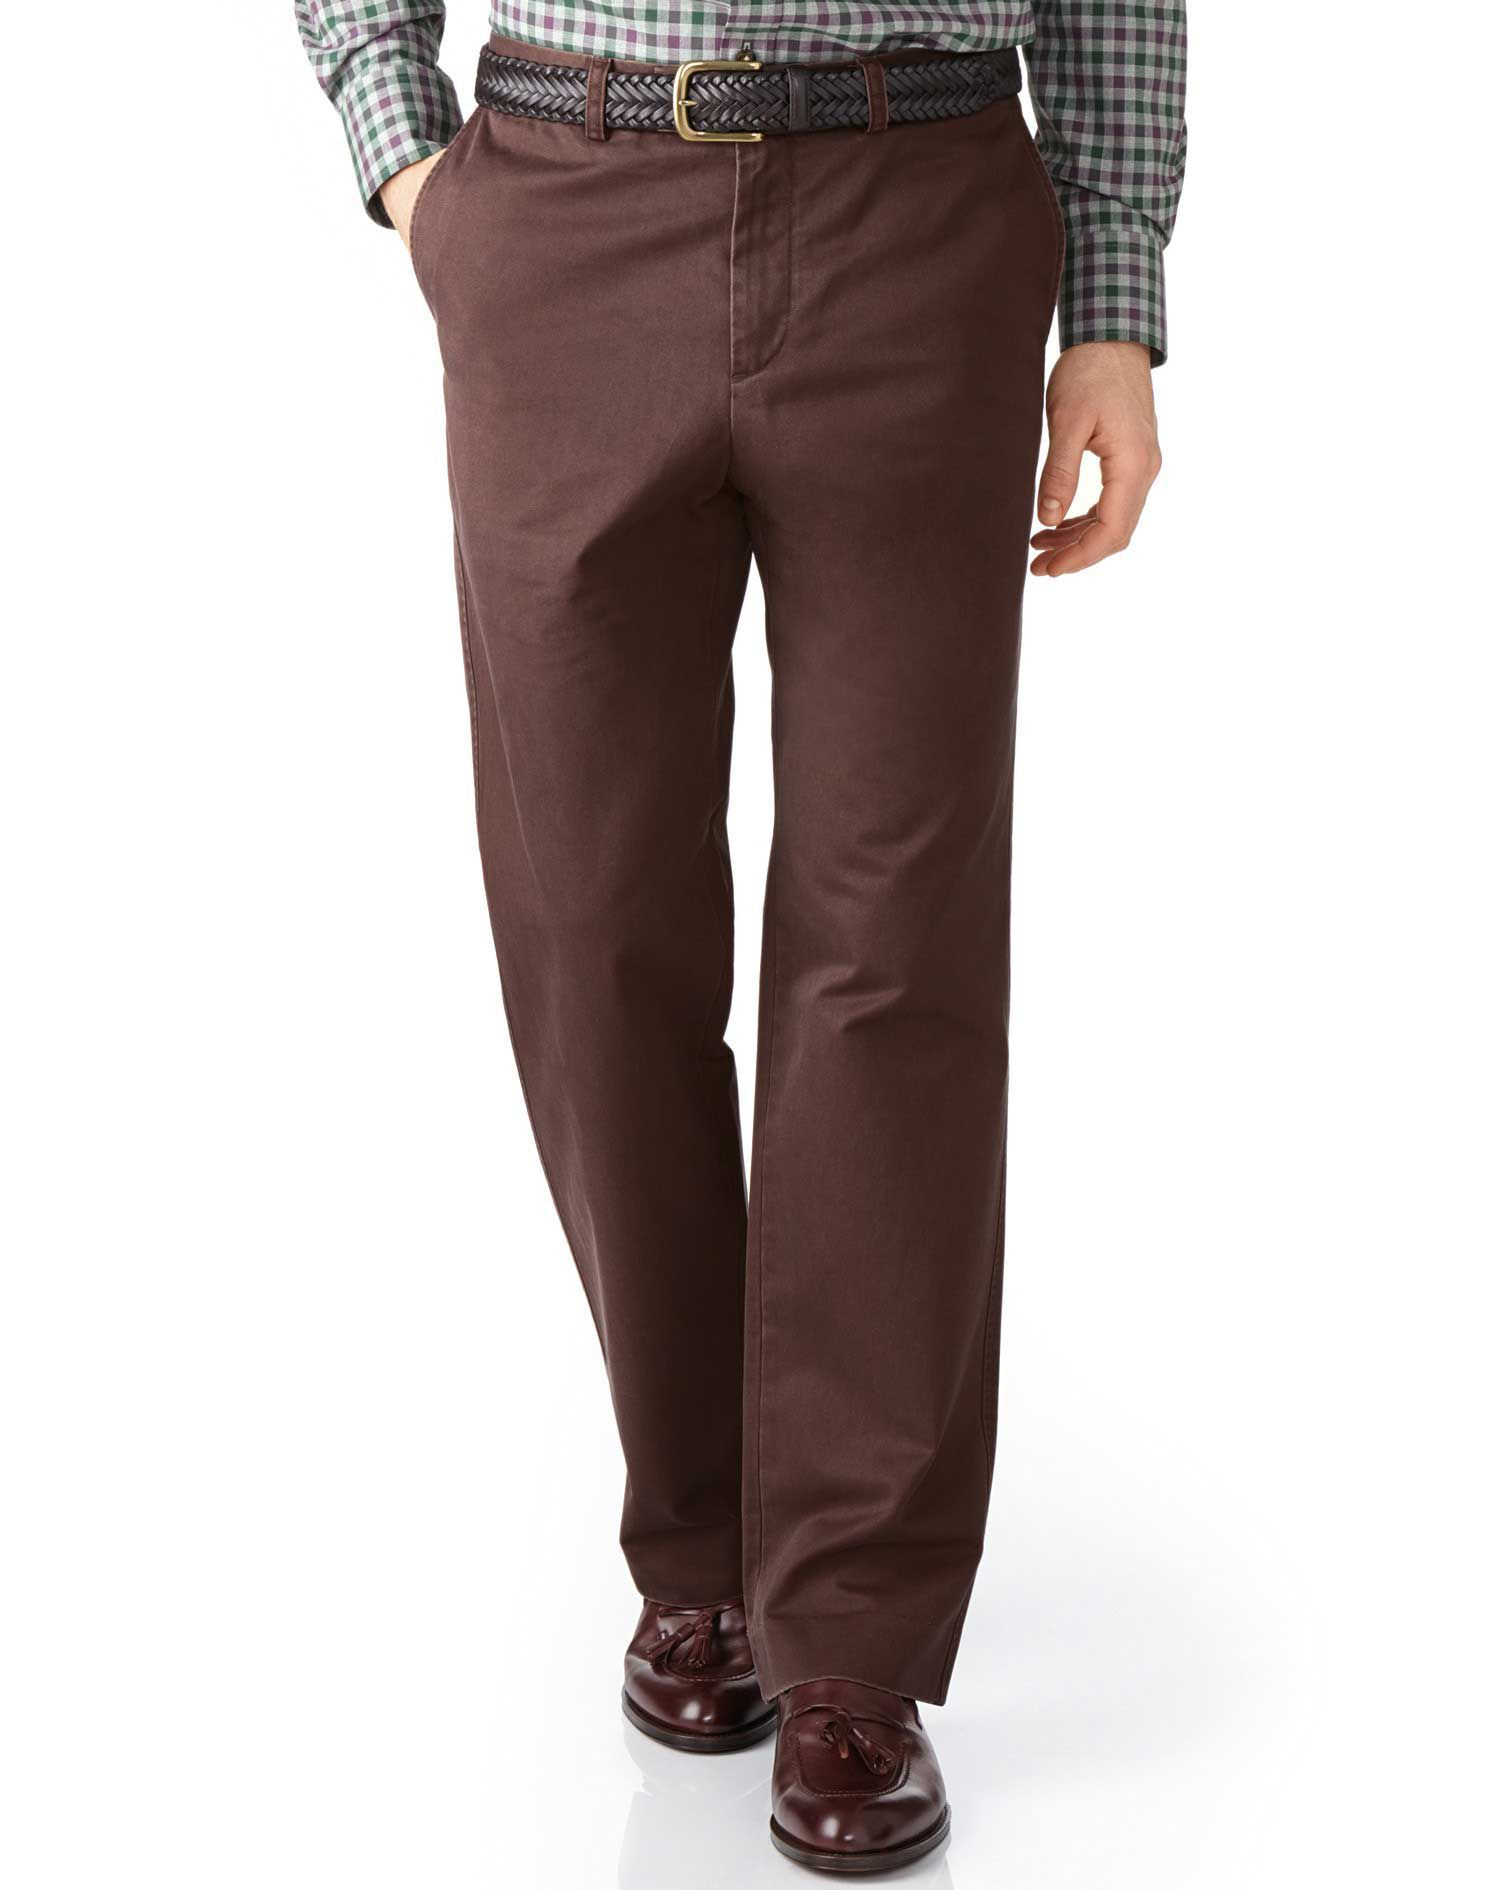 Brown Classic Fit Flat Front Cotton Chino Trousers Size W42 L30 by Charles Tyrwhitt